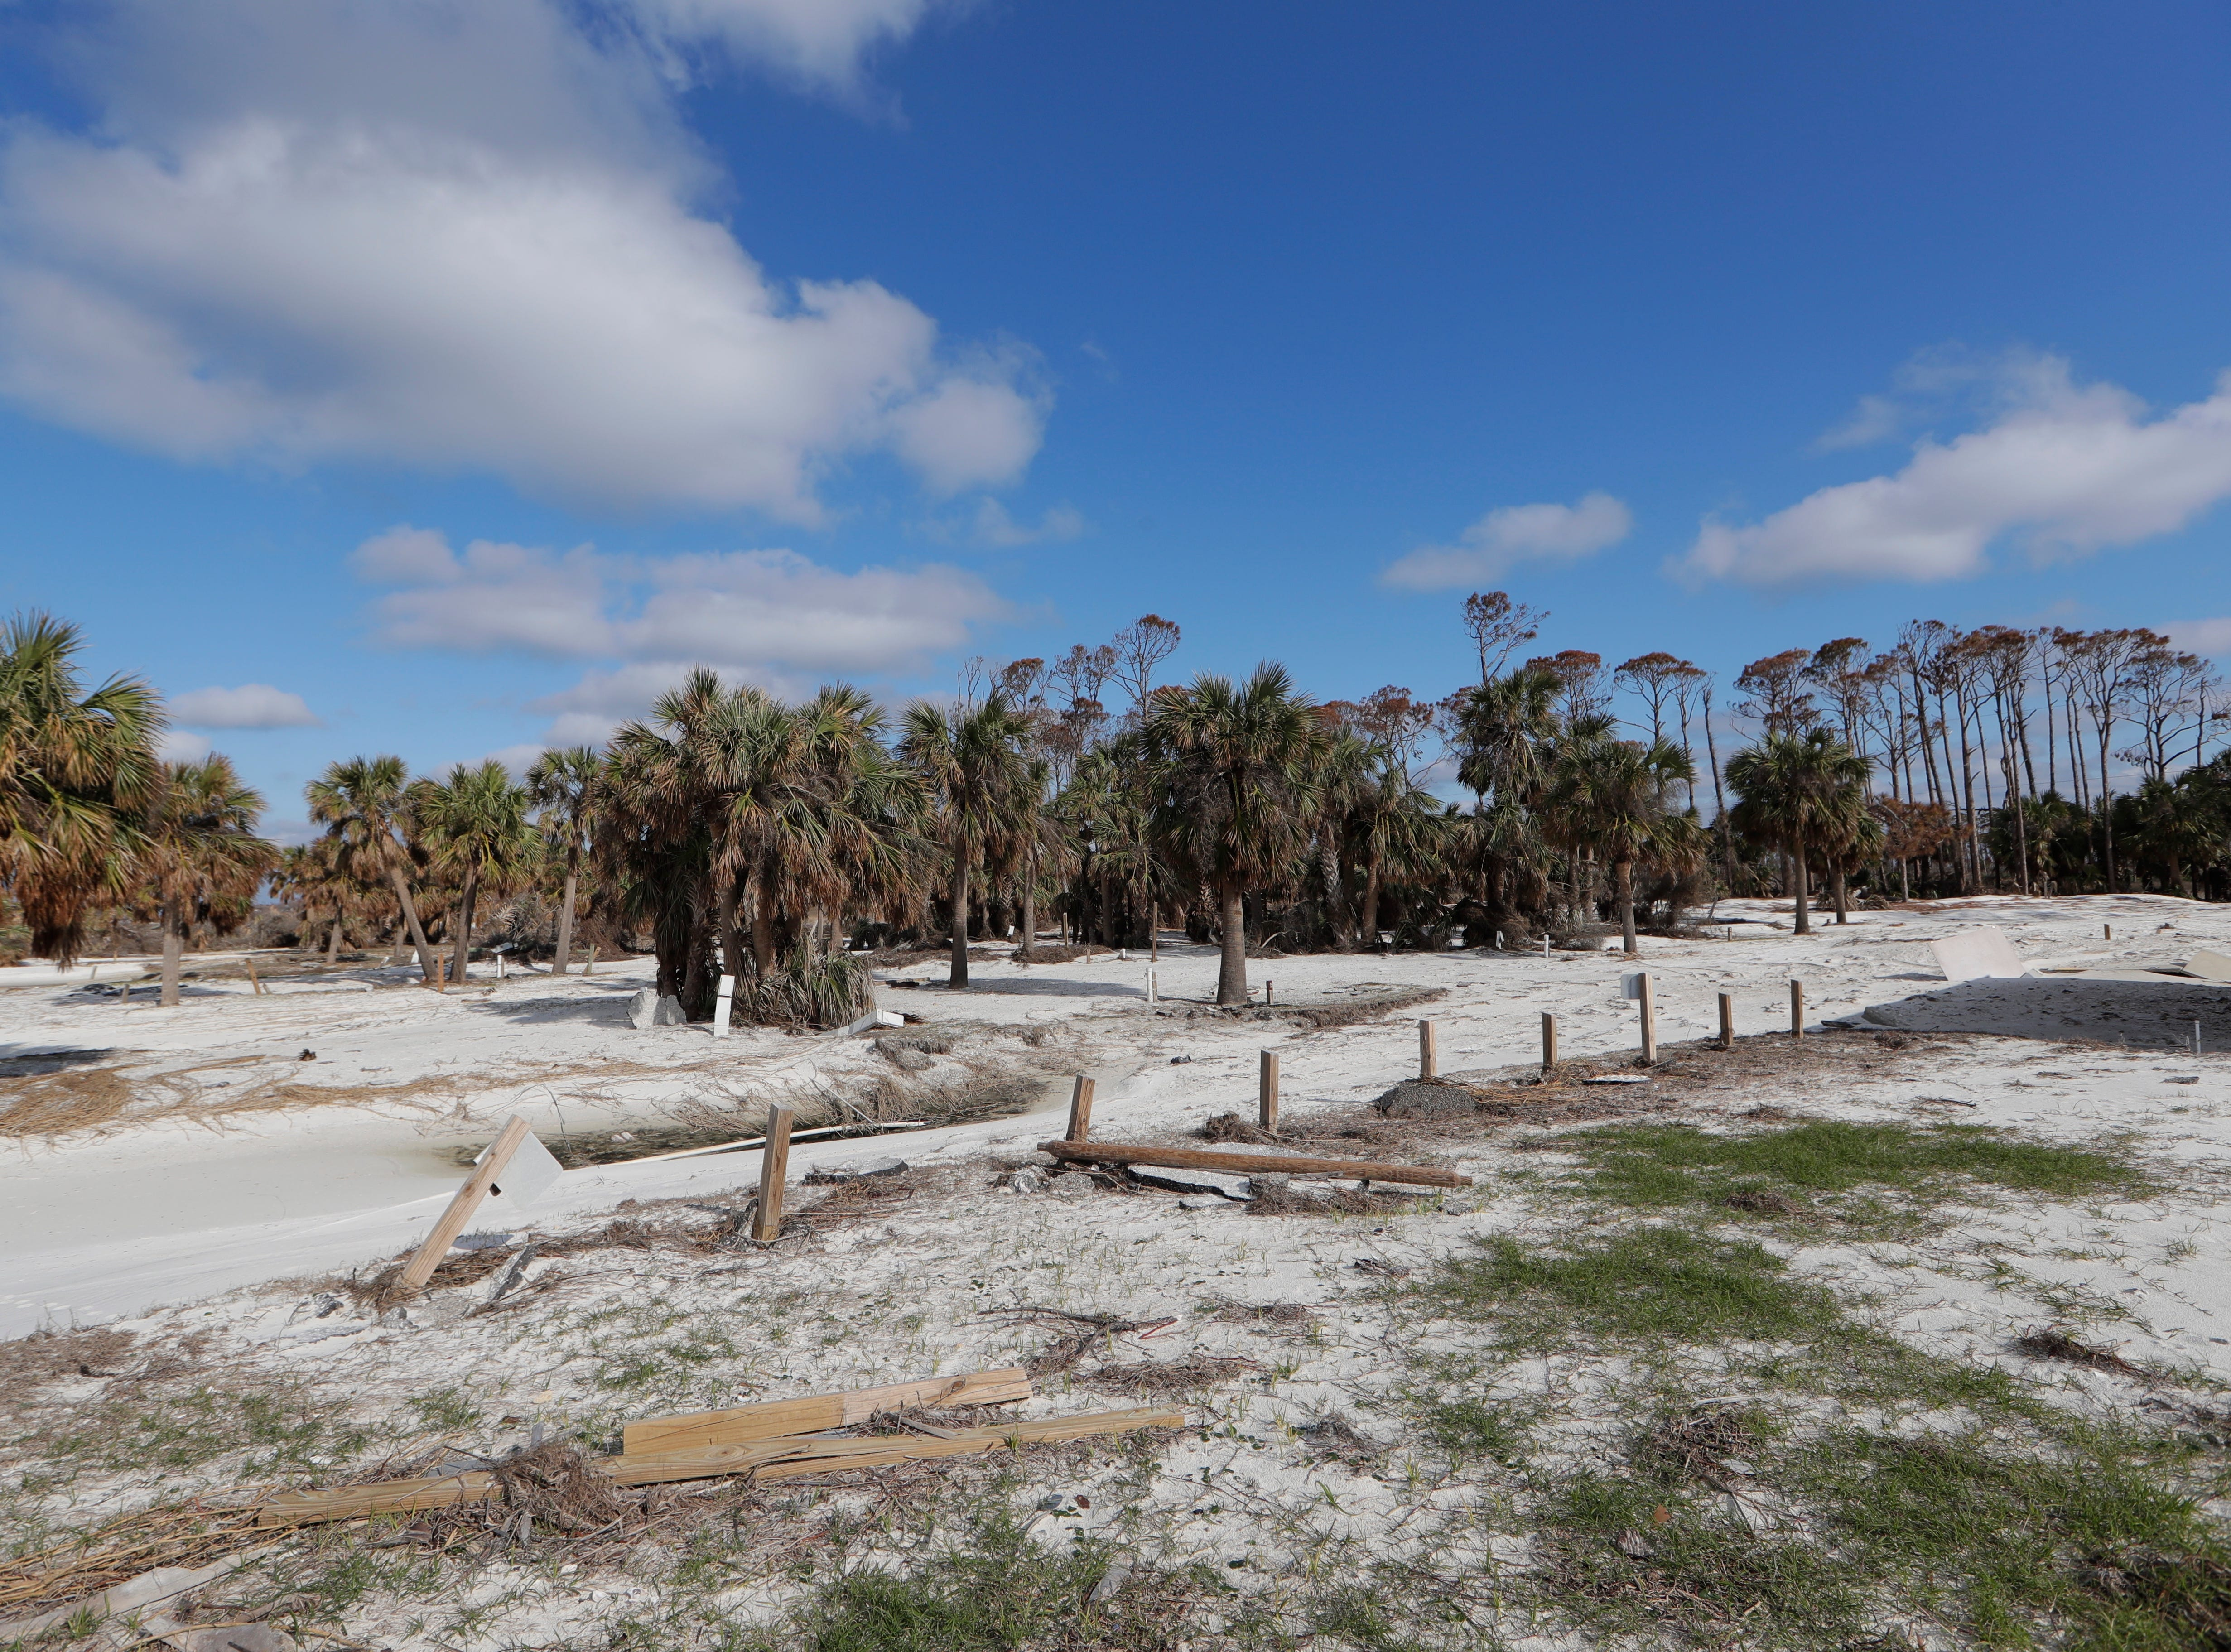 Campsites for St. Joseph Peninsula State Park visitors, Monday, Jan. 14, 2019. Hurricane Michael hit the panhandle three months prior and left a mess of destruction behind.